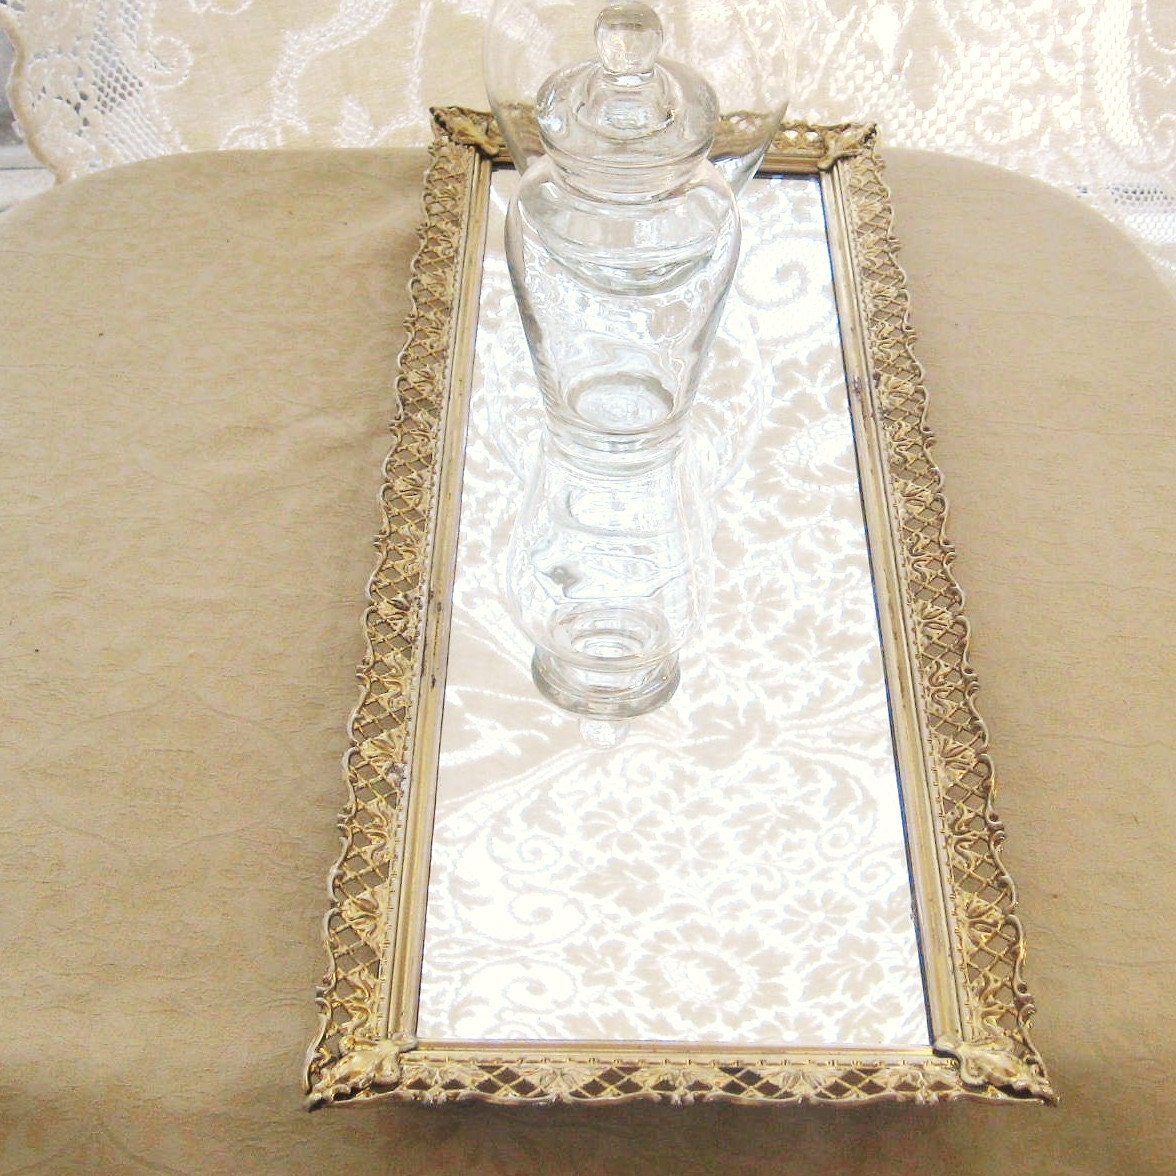 Mirrored Vanity Tray Gold Metal Filigree Long and Narrow